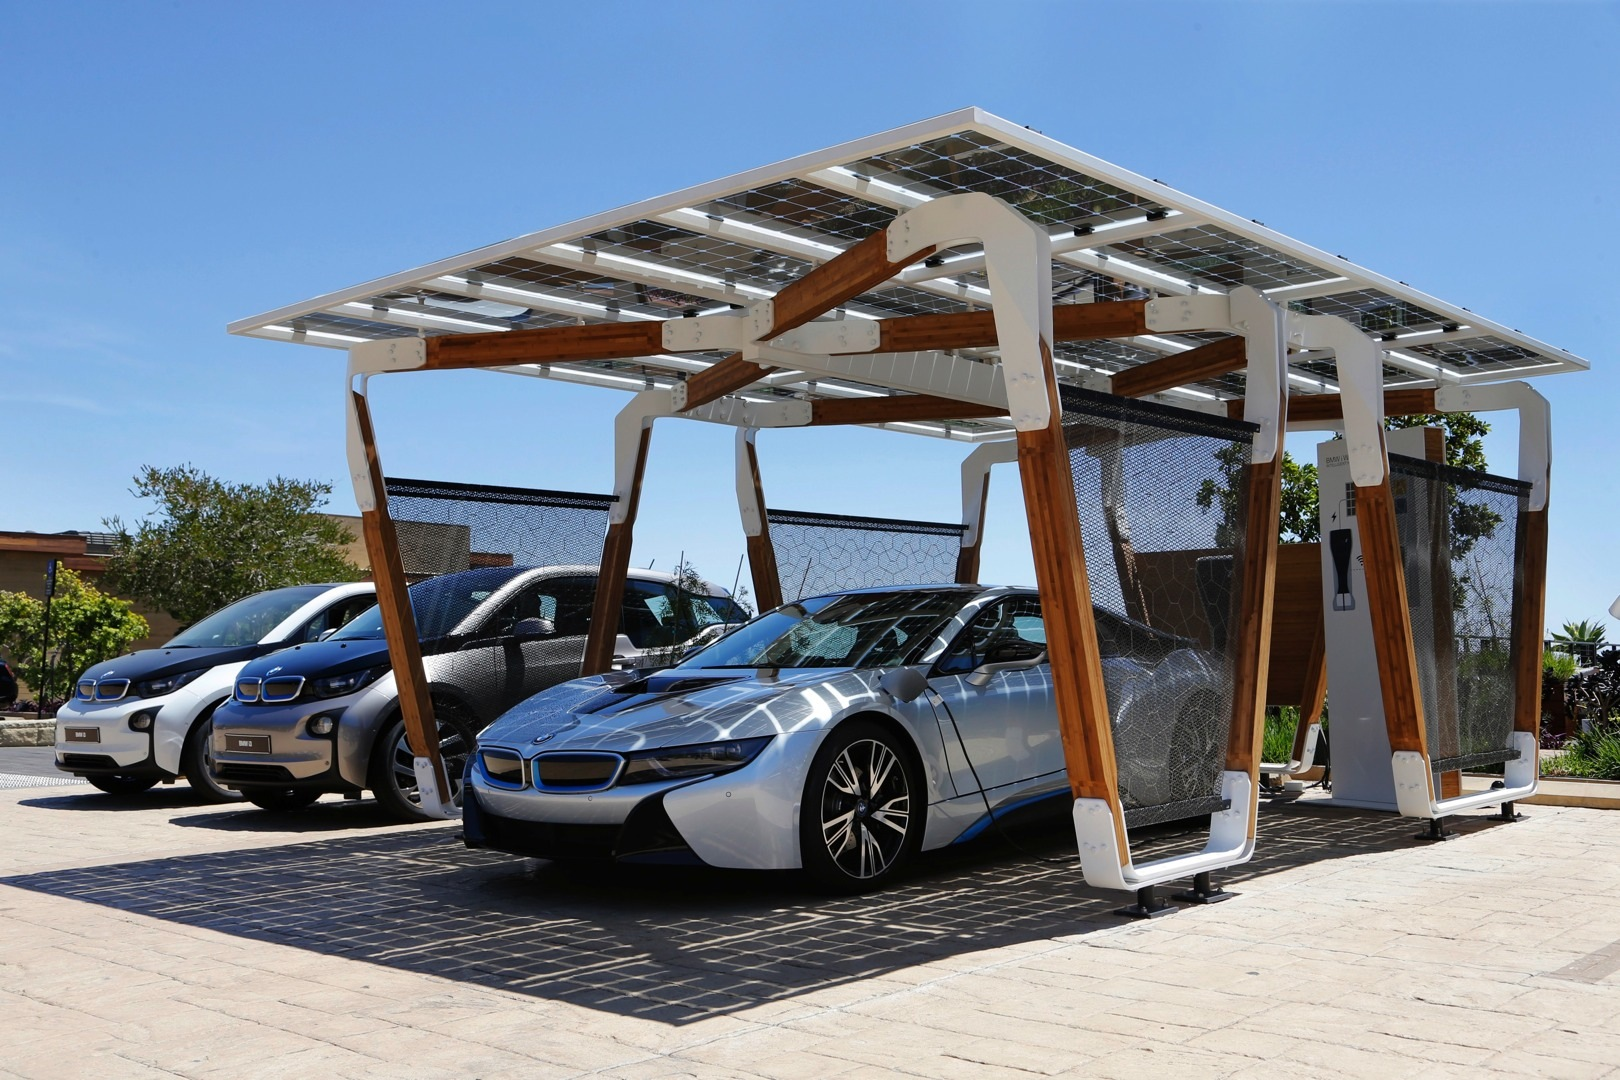 Carport On Wheels : Bmw presents solar carport concept for i cars autoevolution